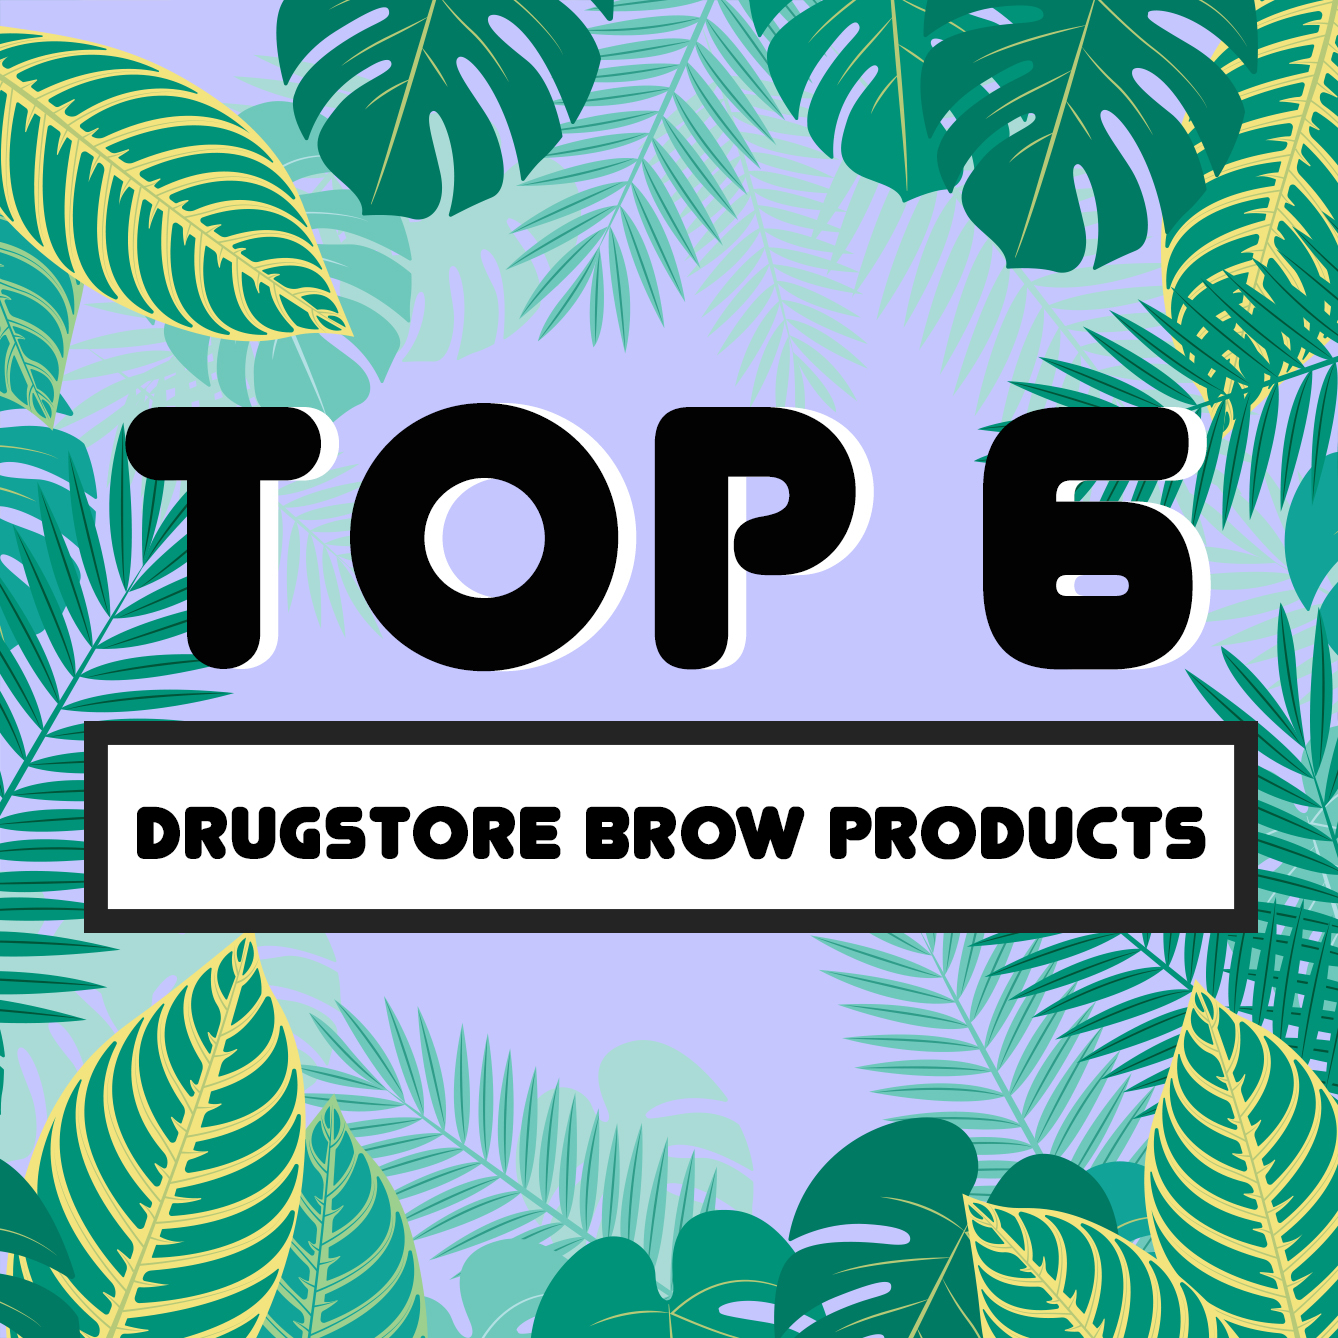 The Top Six Drugstore Brow Products